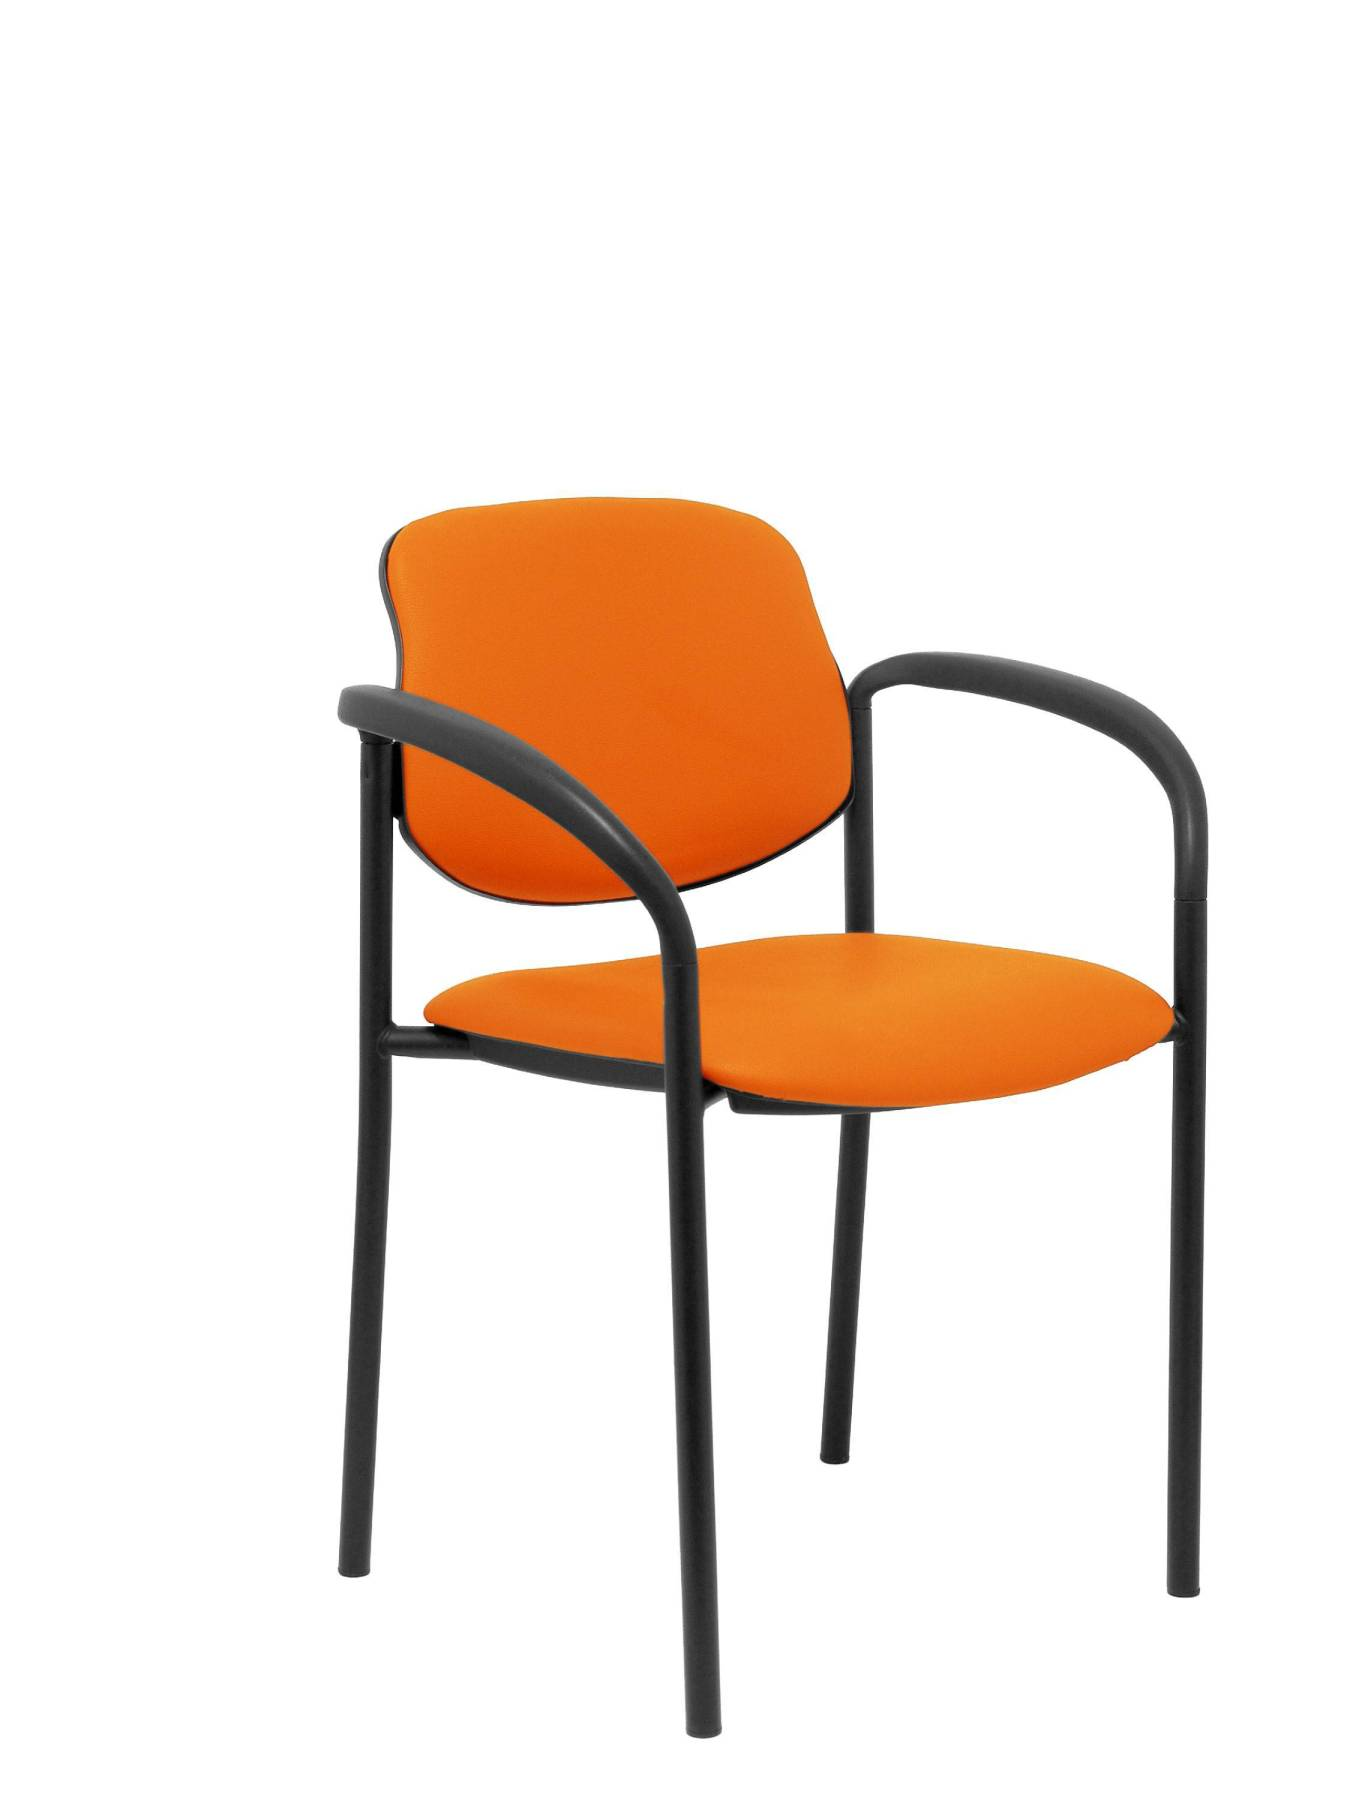 Visitor Chair 4's Topsy, With Arms And Estructrua Negro-up Seat And Backstop Upholstered In Tissue Similpiel Orange PI